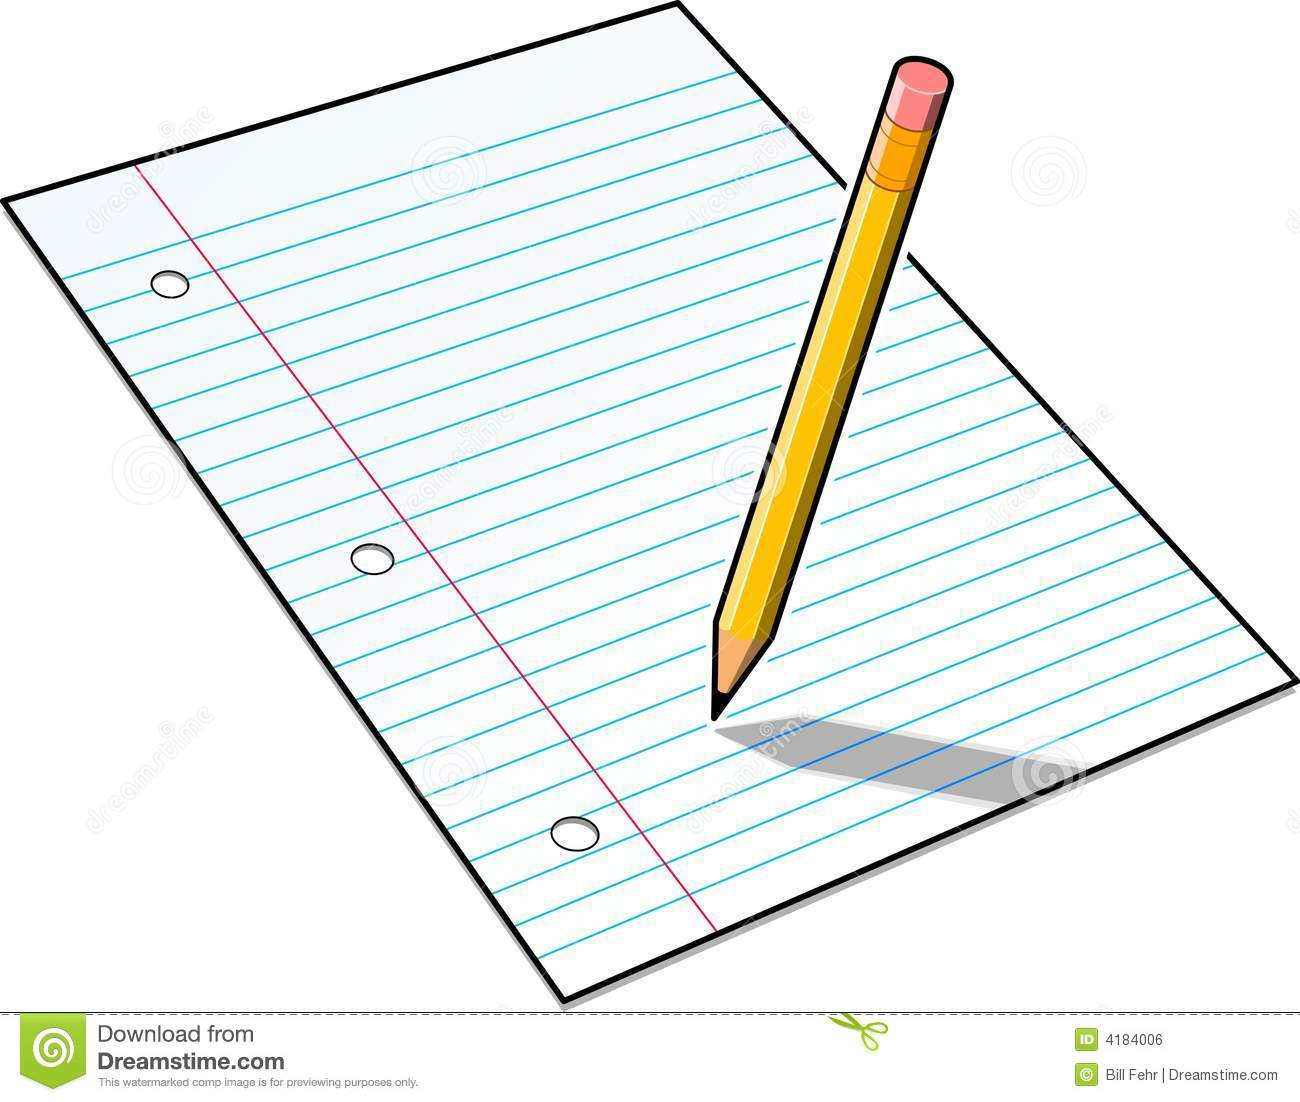 Free clipart paper and pencils. Pictures of pencil download